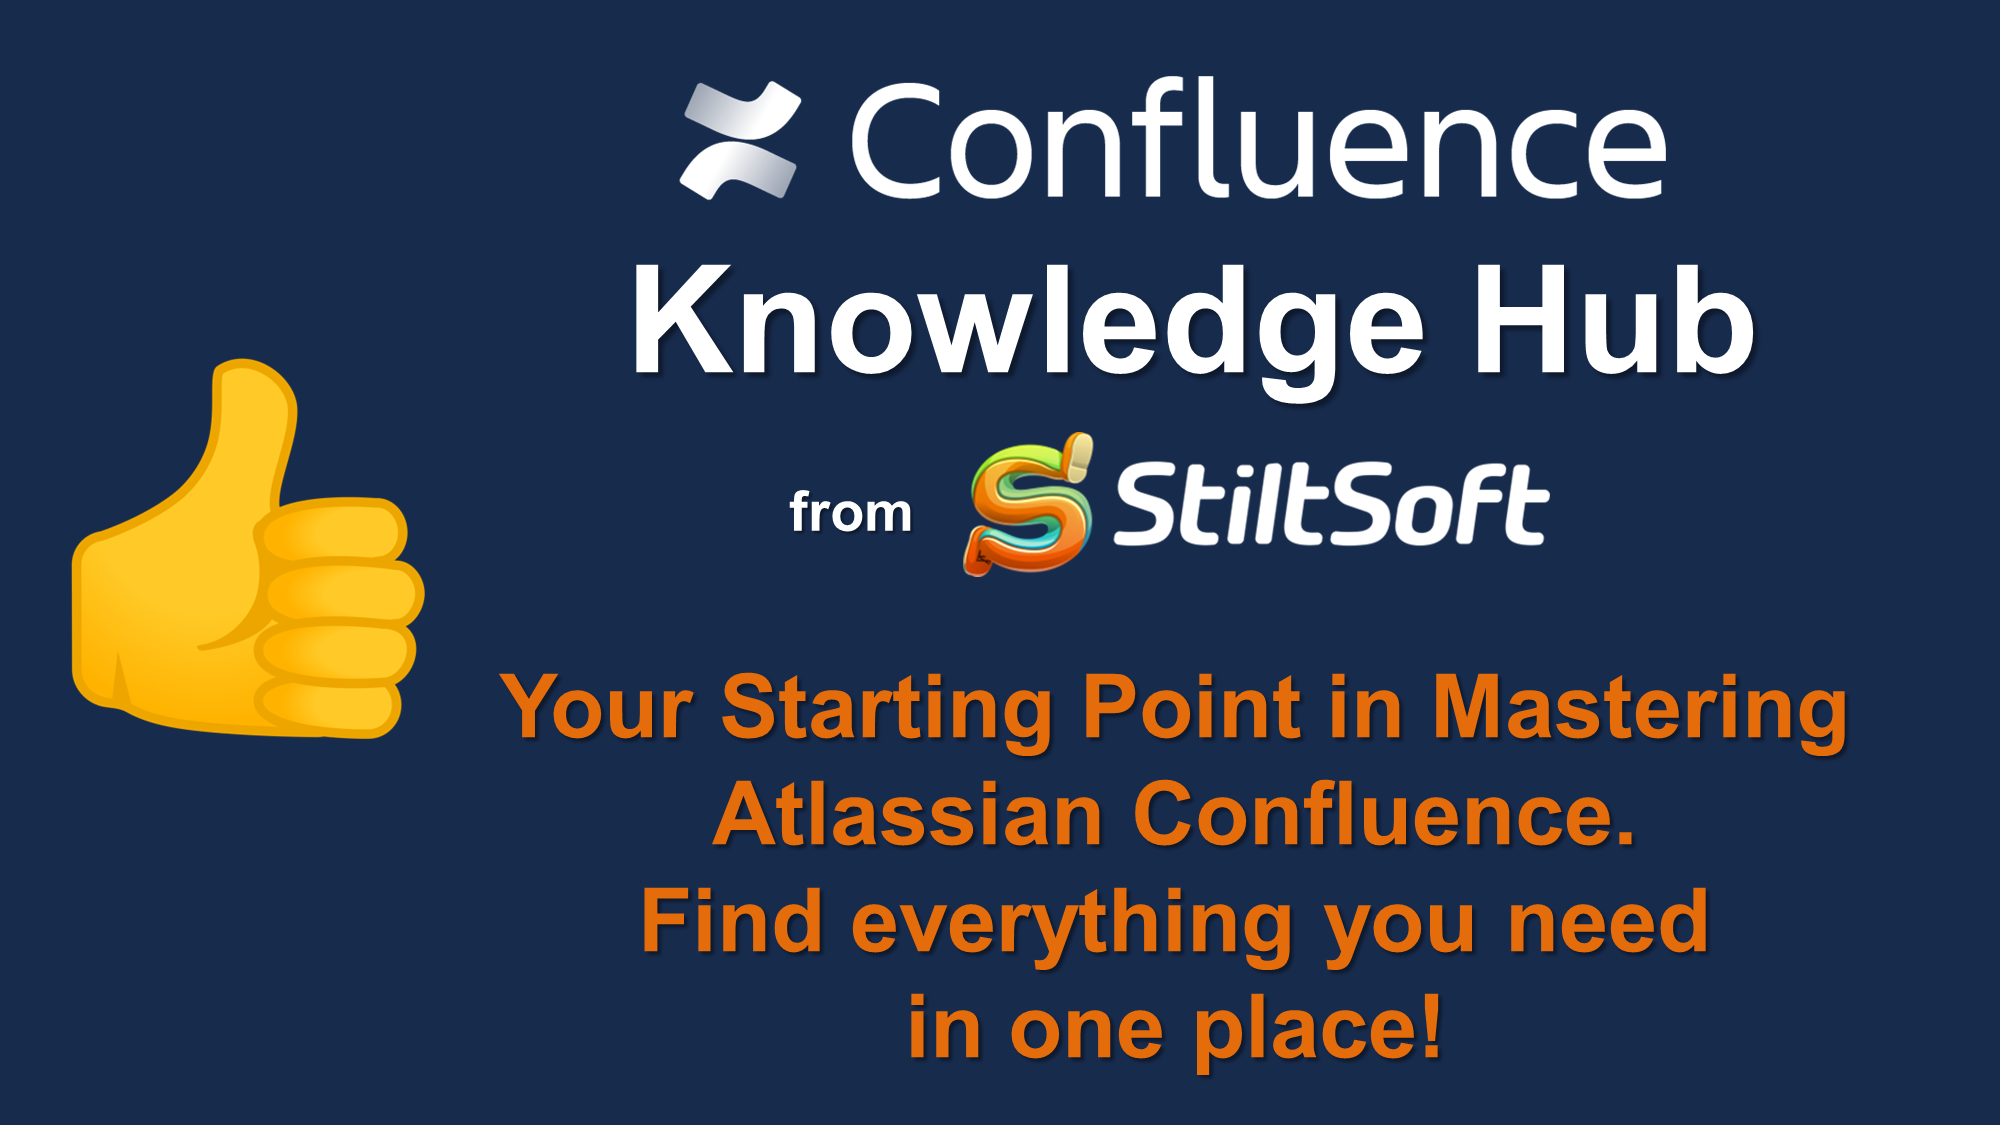 Knowledge Hub for Confluence